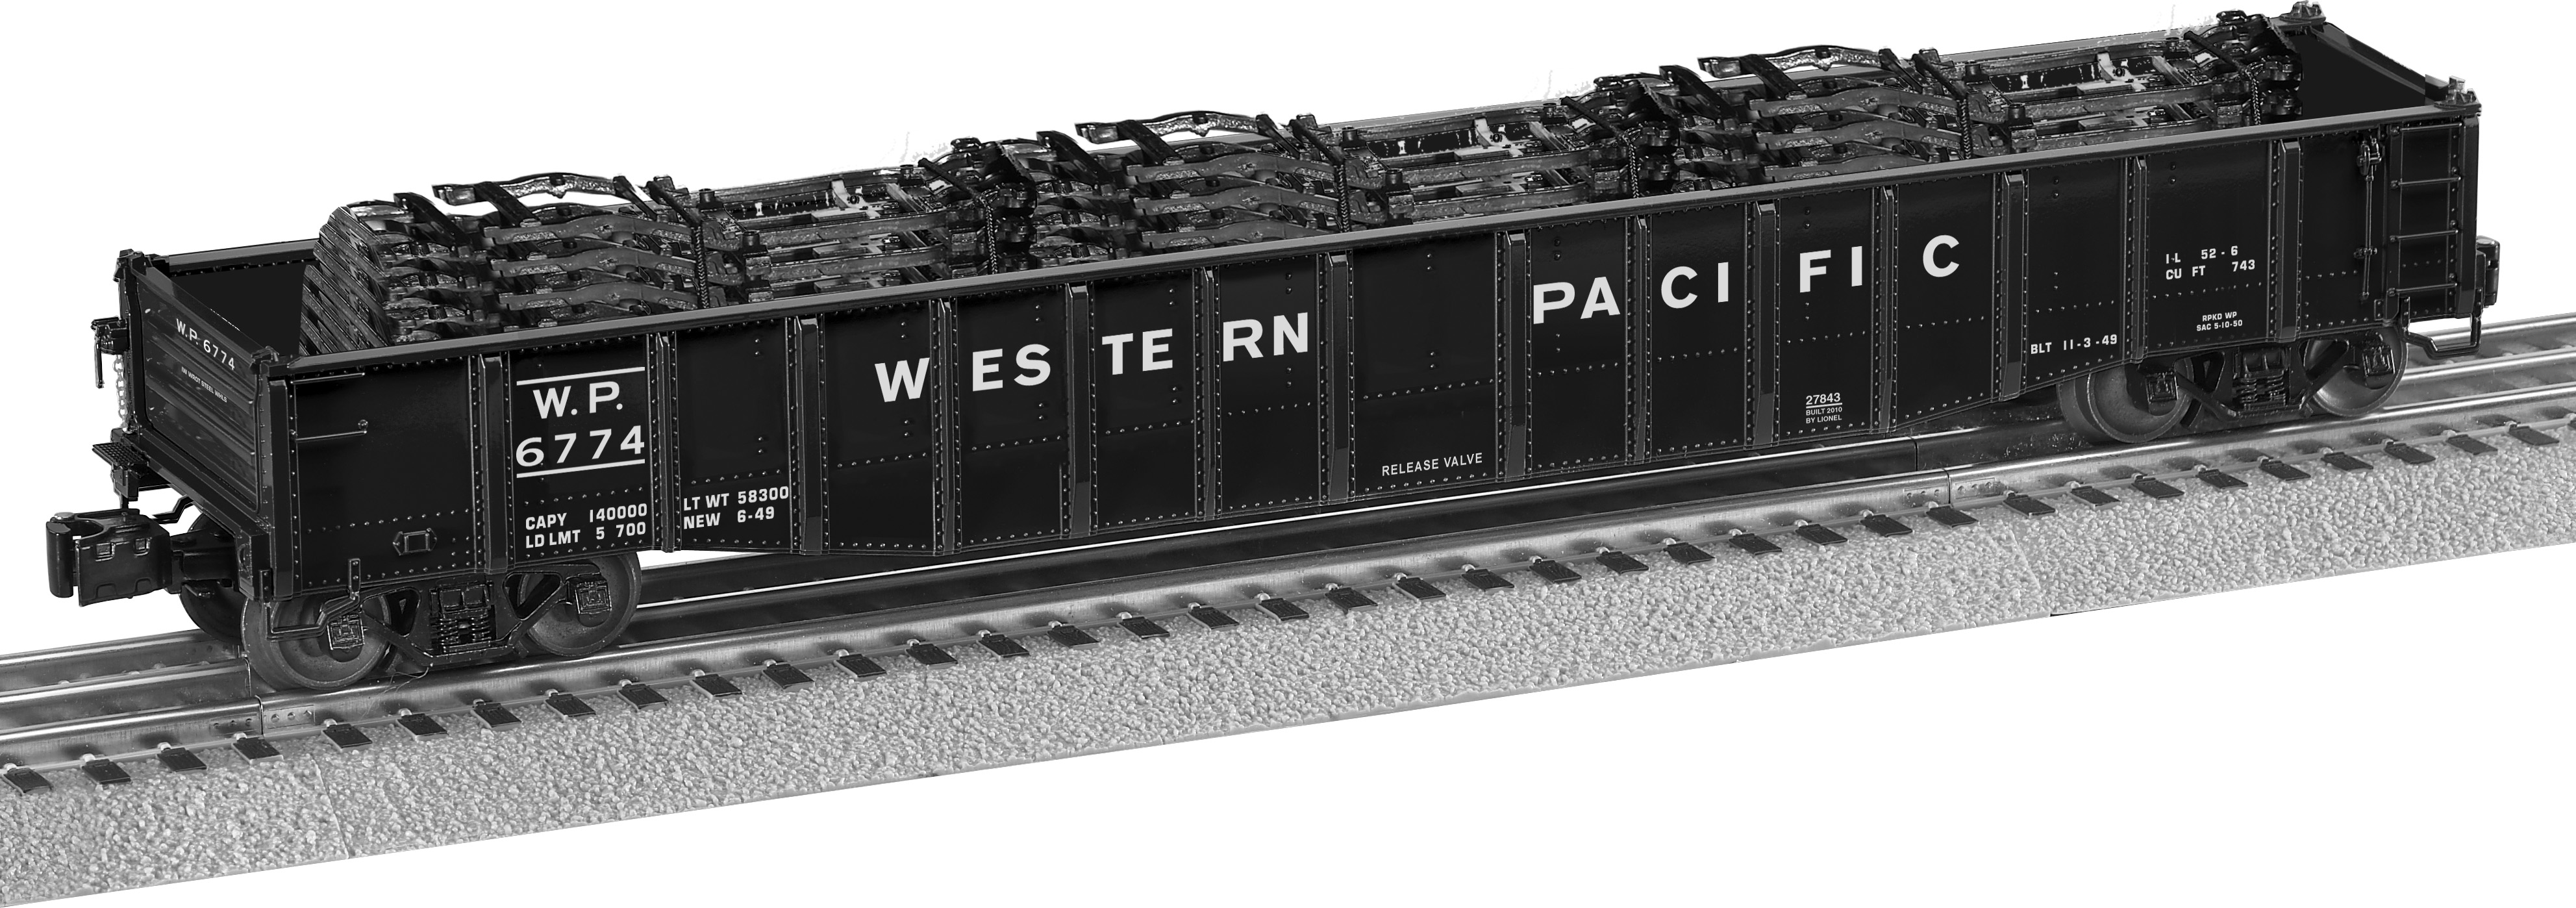 Feather Route Freight 3 Pack Lionel Train Track Wiring